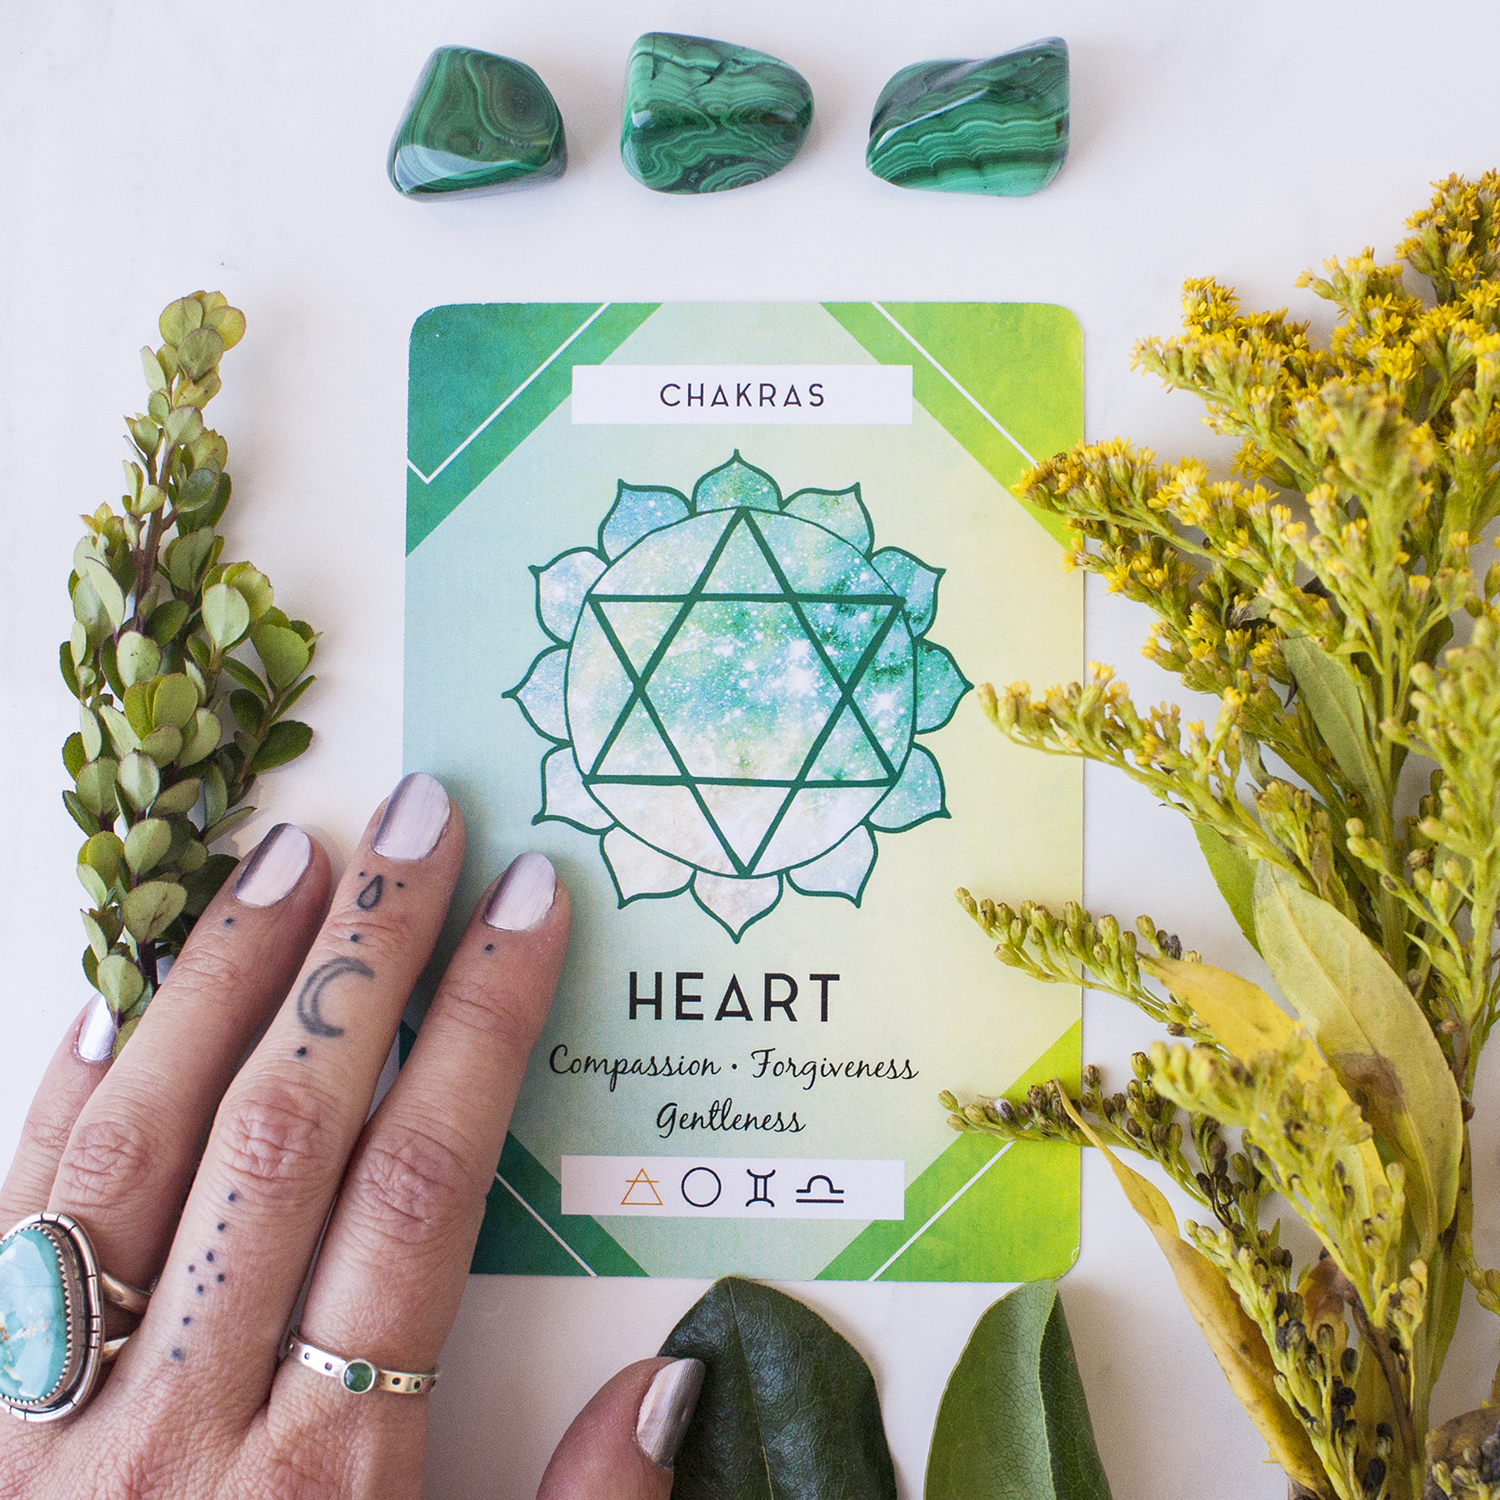 Heart chakra card featured from The Ritual Deck.